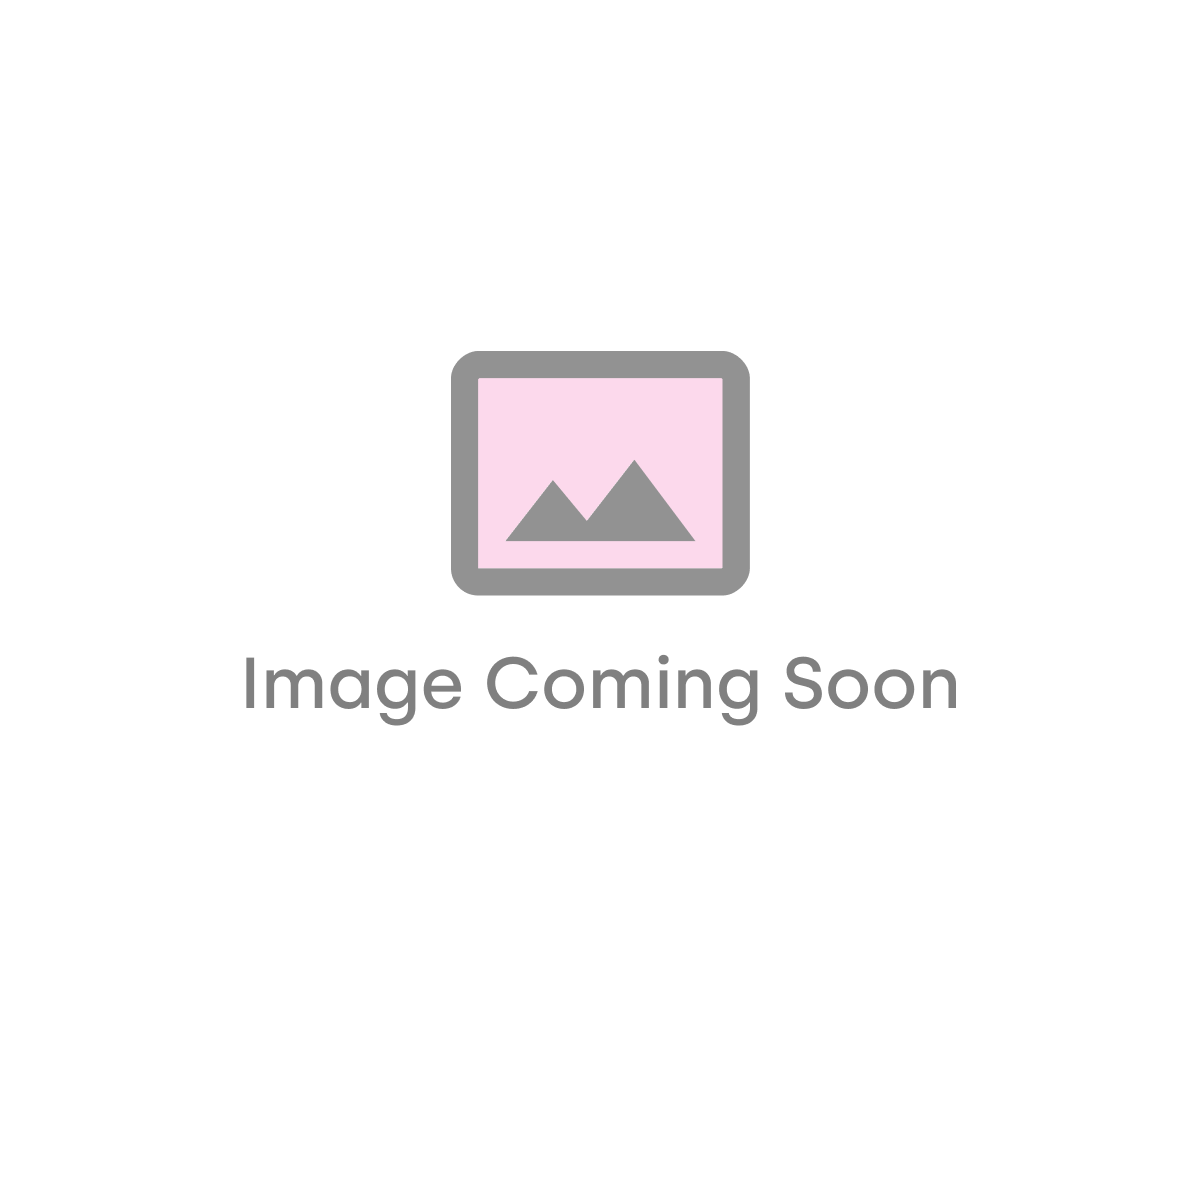 Roma Straight Heated Towel Rail  - 1200mm x 600mm - Anthracite (19722)